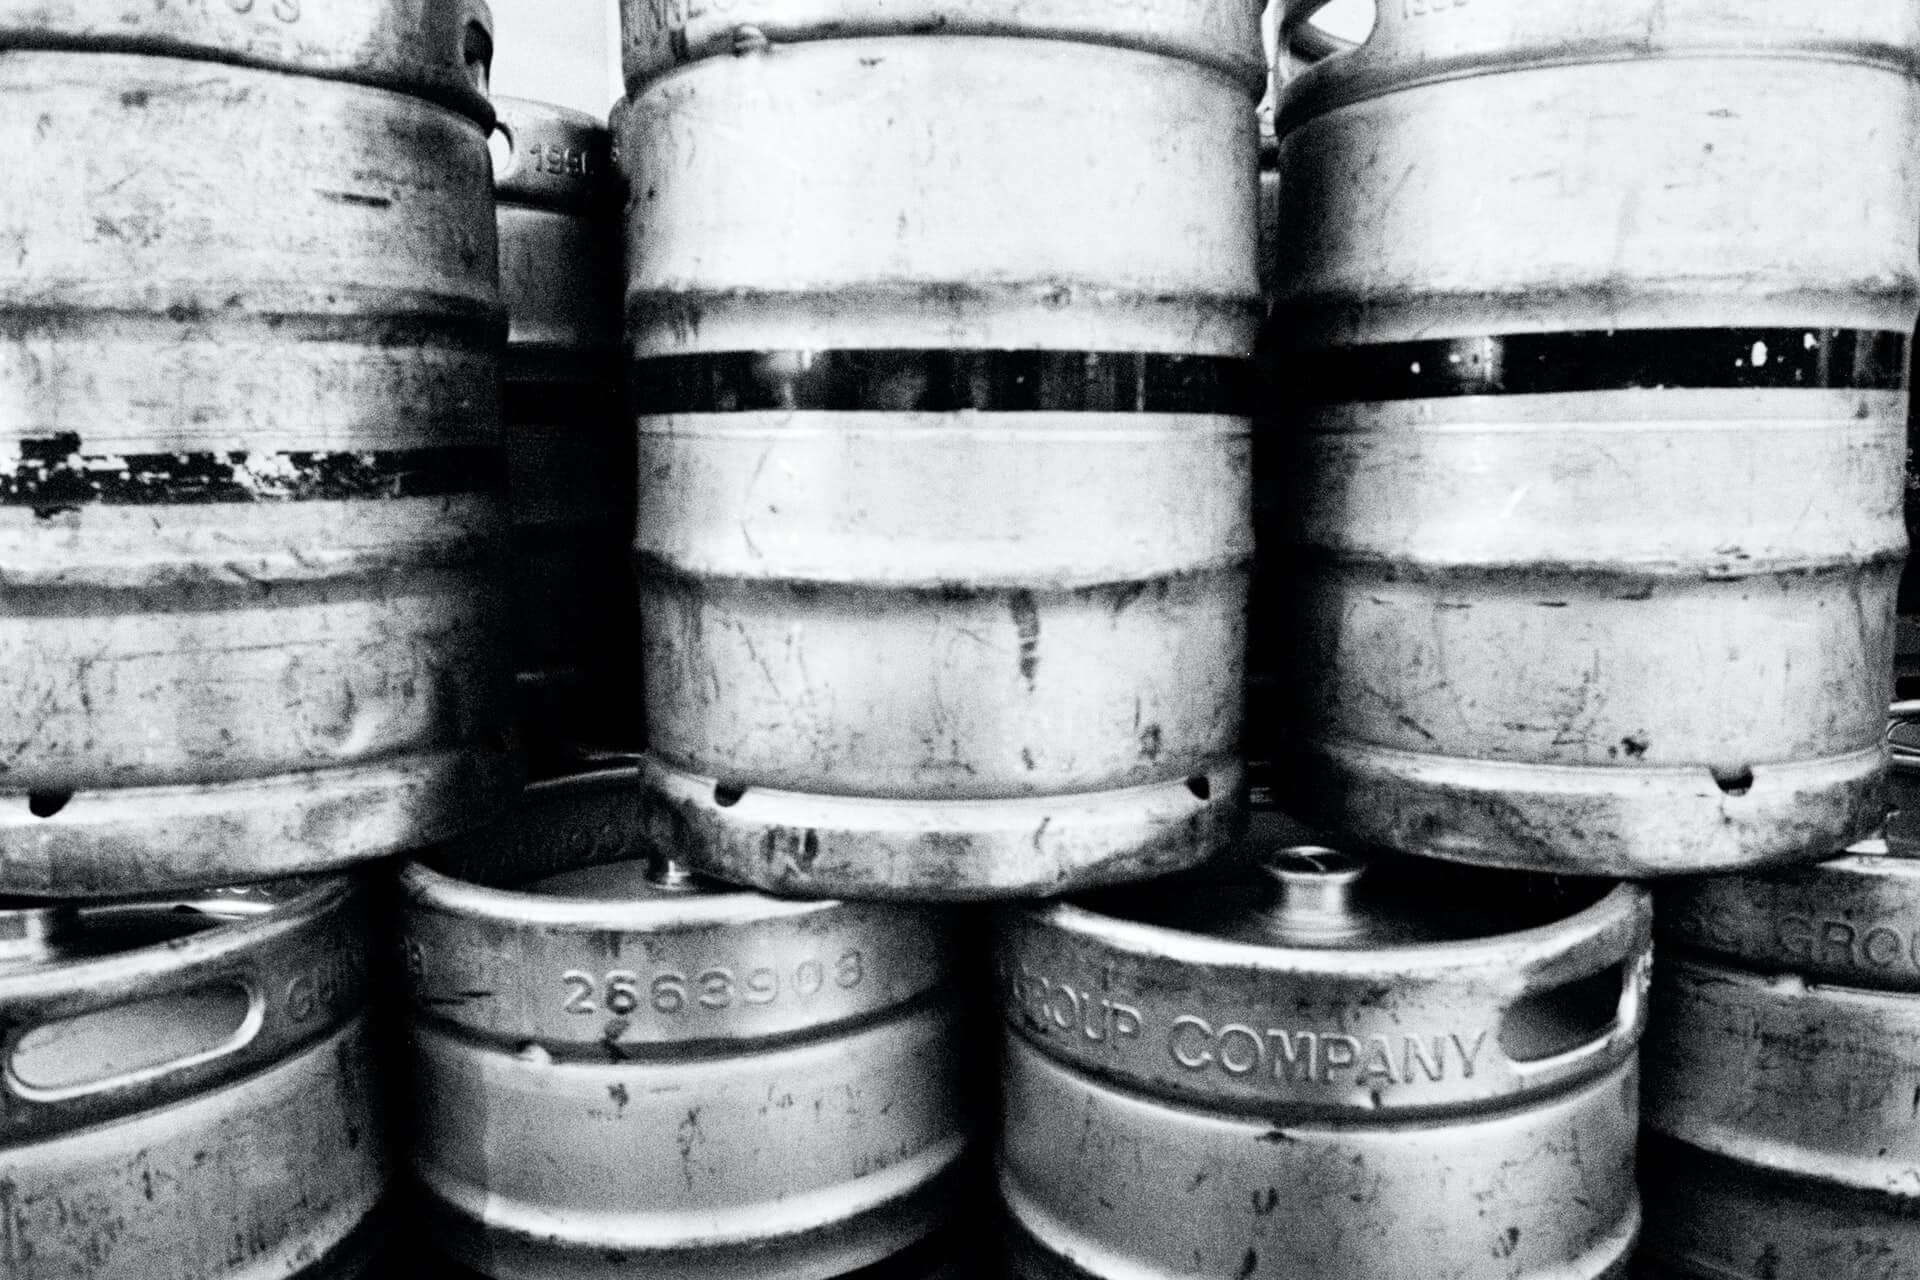 Stack of beer kegs in black and white